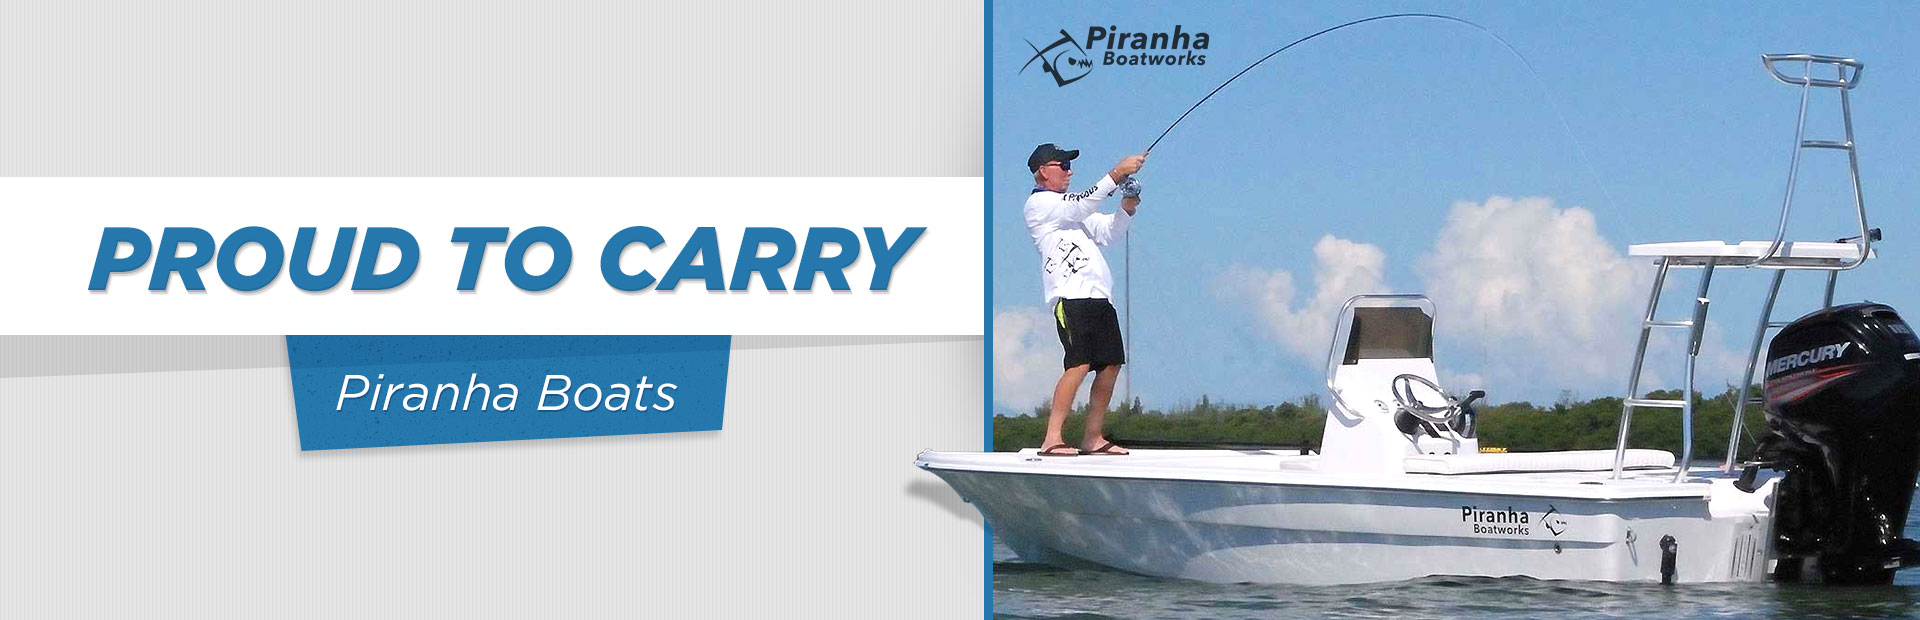 We are proud to carry Piranha boats!